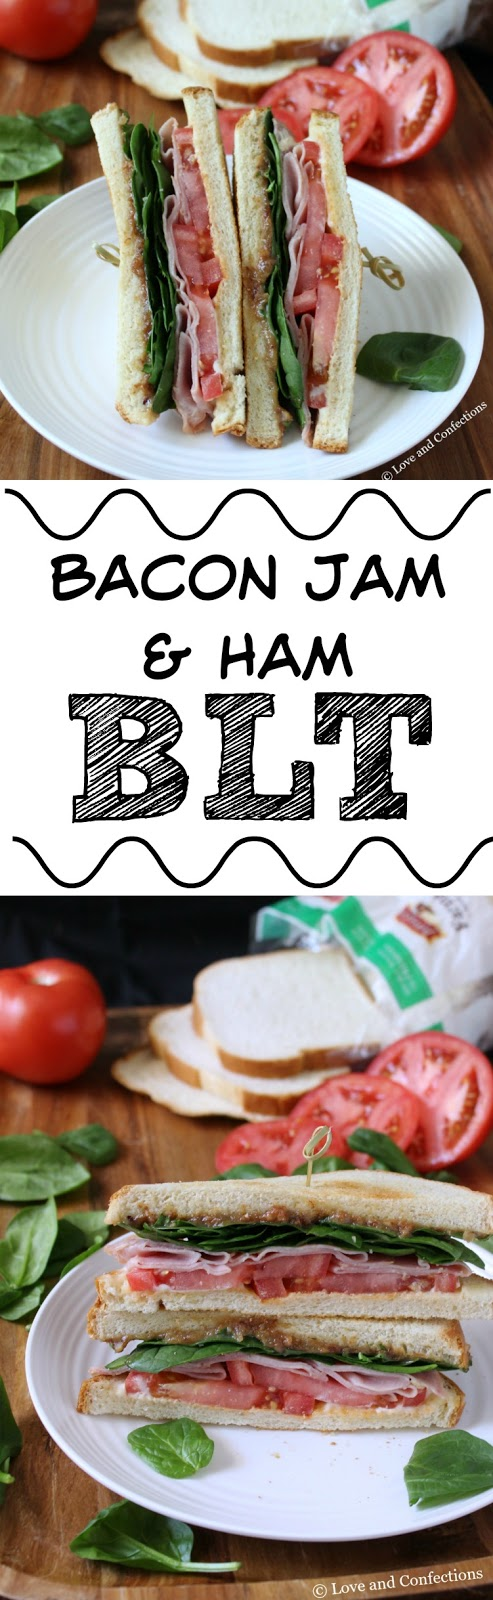 Bacon Jam & Ham BLT from LoveandConfections.com #SandwichWithTheBest